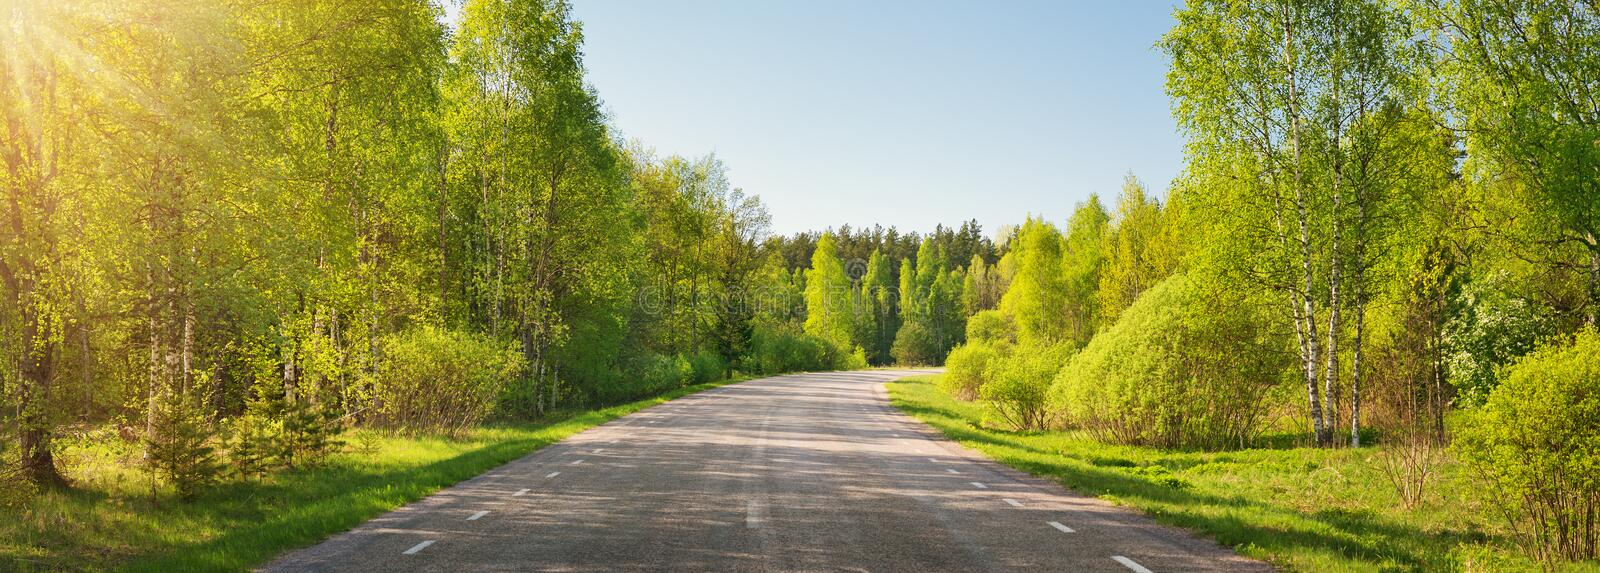 Asphalt road panorama in countryside on sunny summer day royalty free stock photography